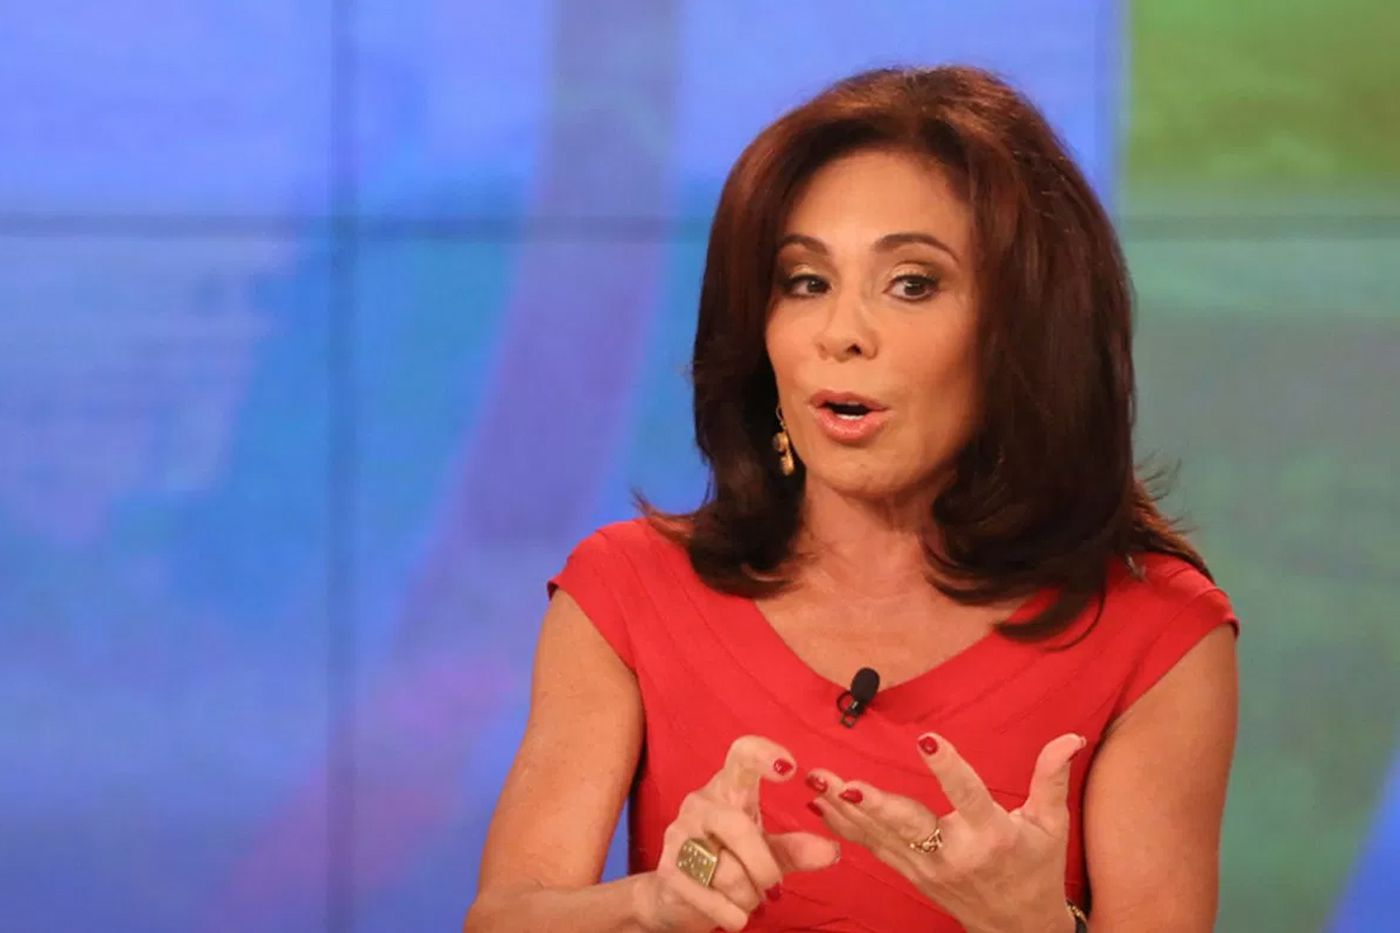 Fox News host Jeanine Pirro has become a frequent fundraiser for Pennsylvania Republicans